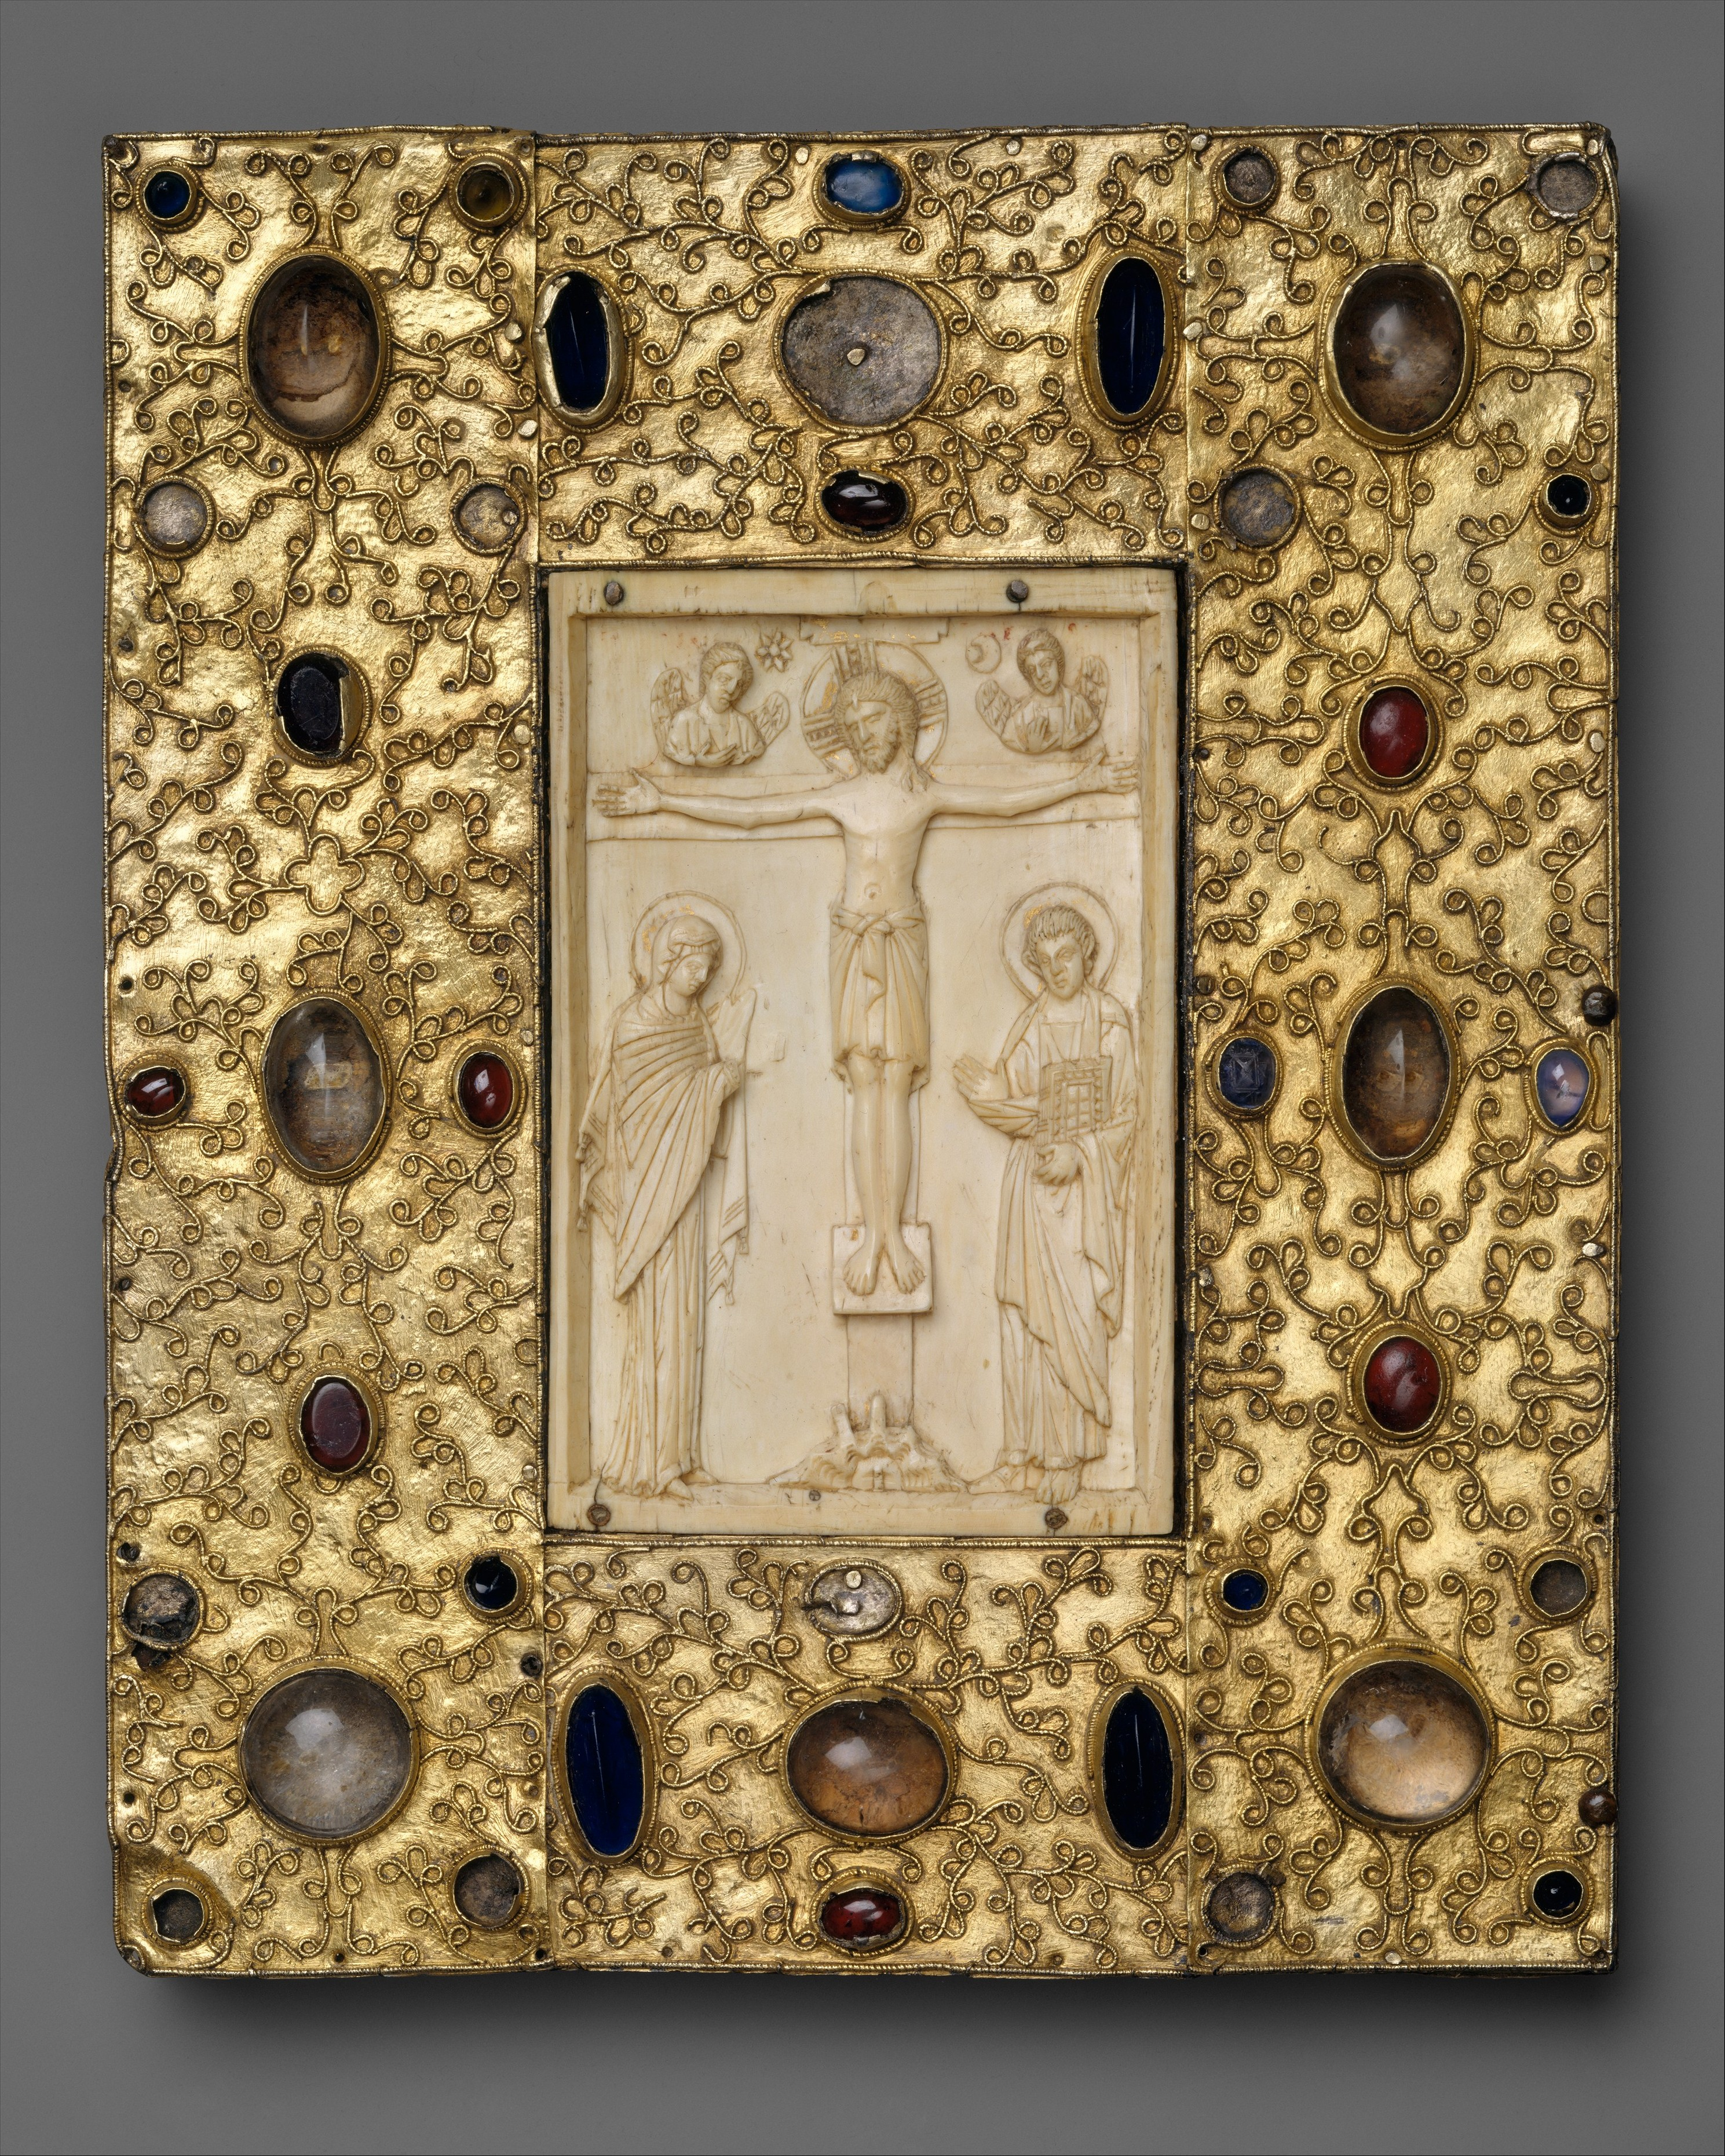 Book Cover With Byzantine Icon Of The Crucifixion